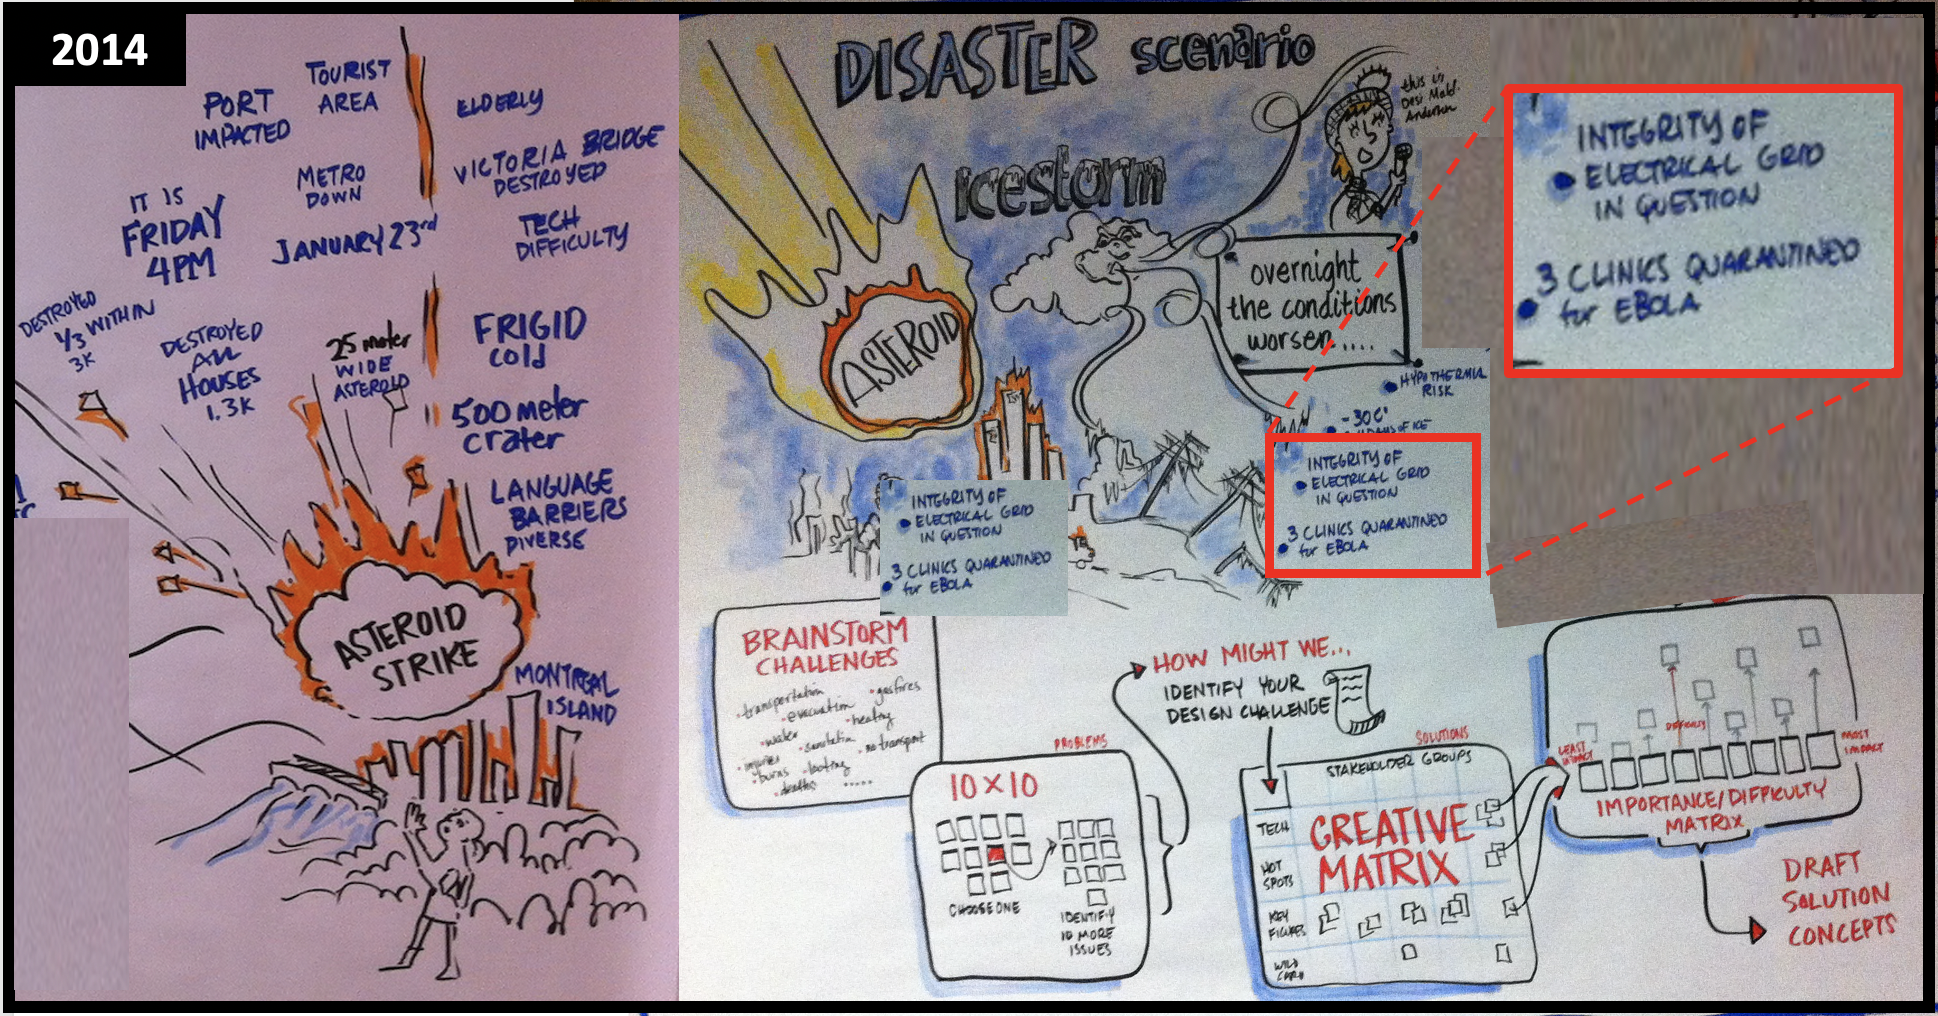 Disaster planning trains volunteers to apply design thinking to come up with creative solutions